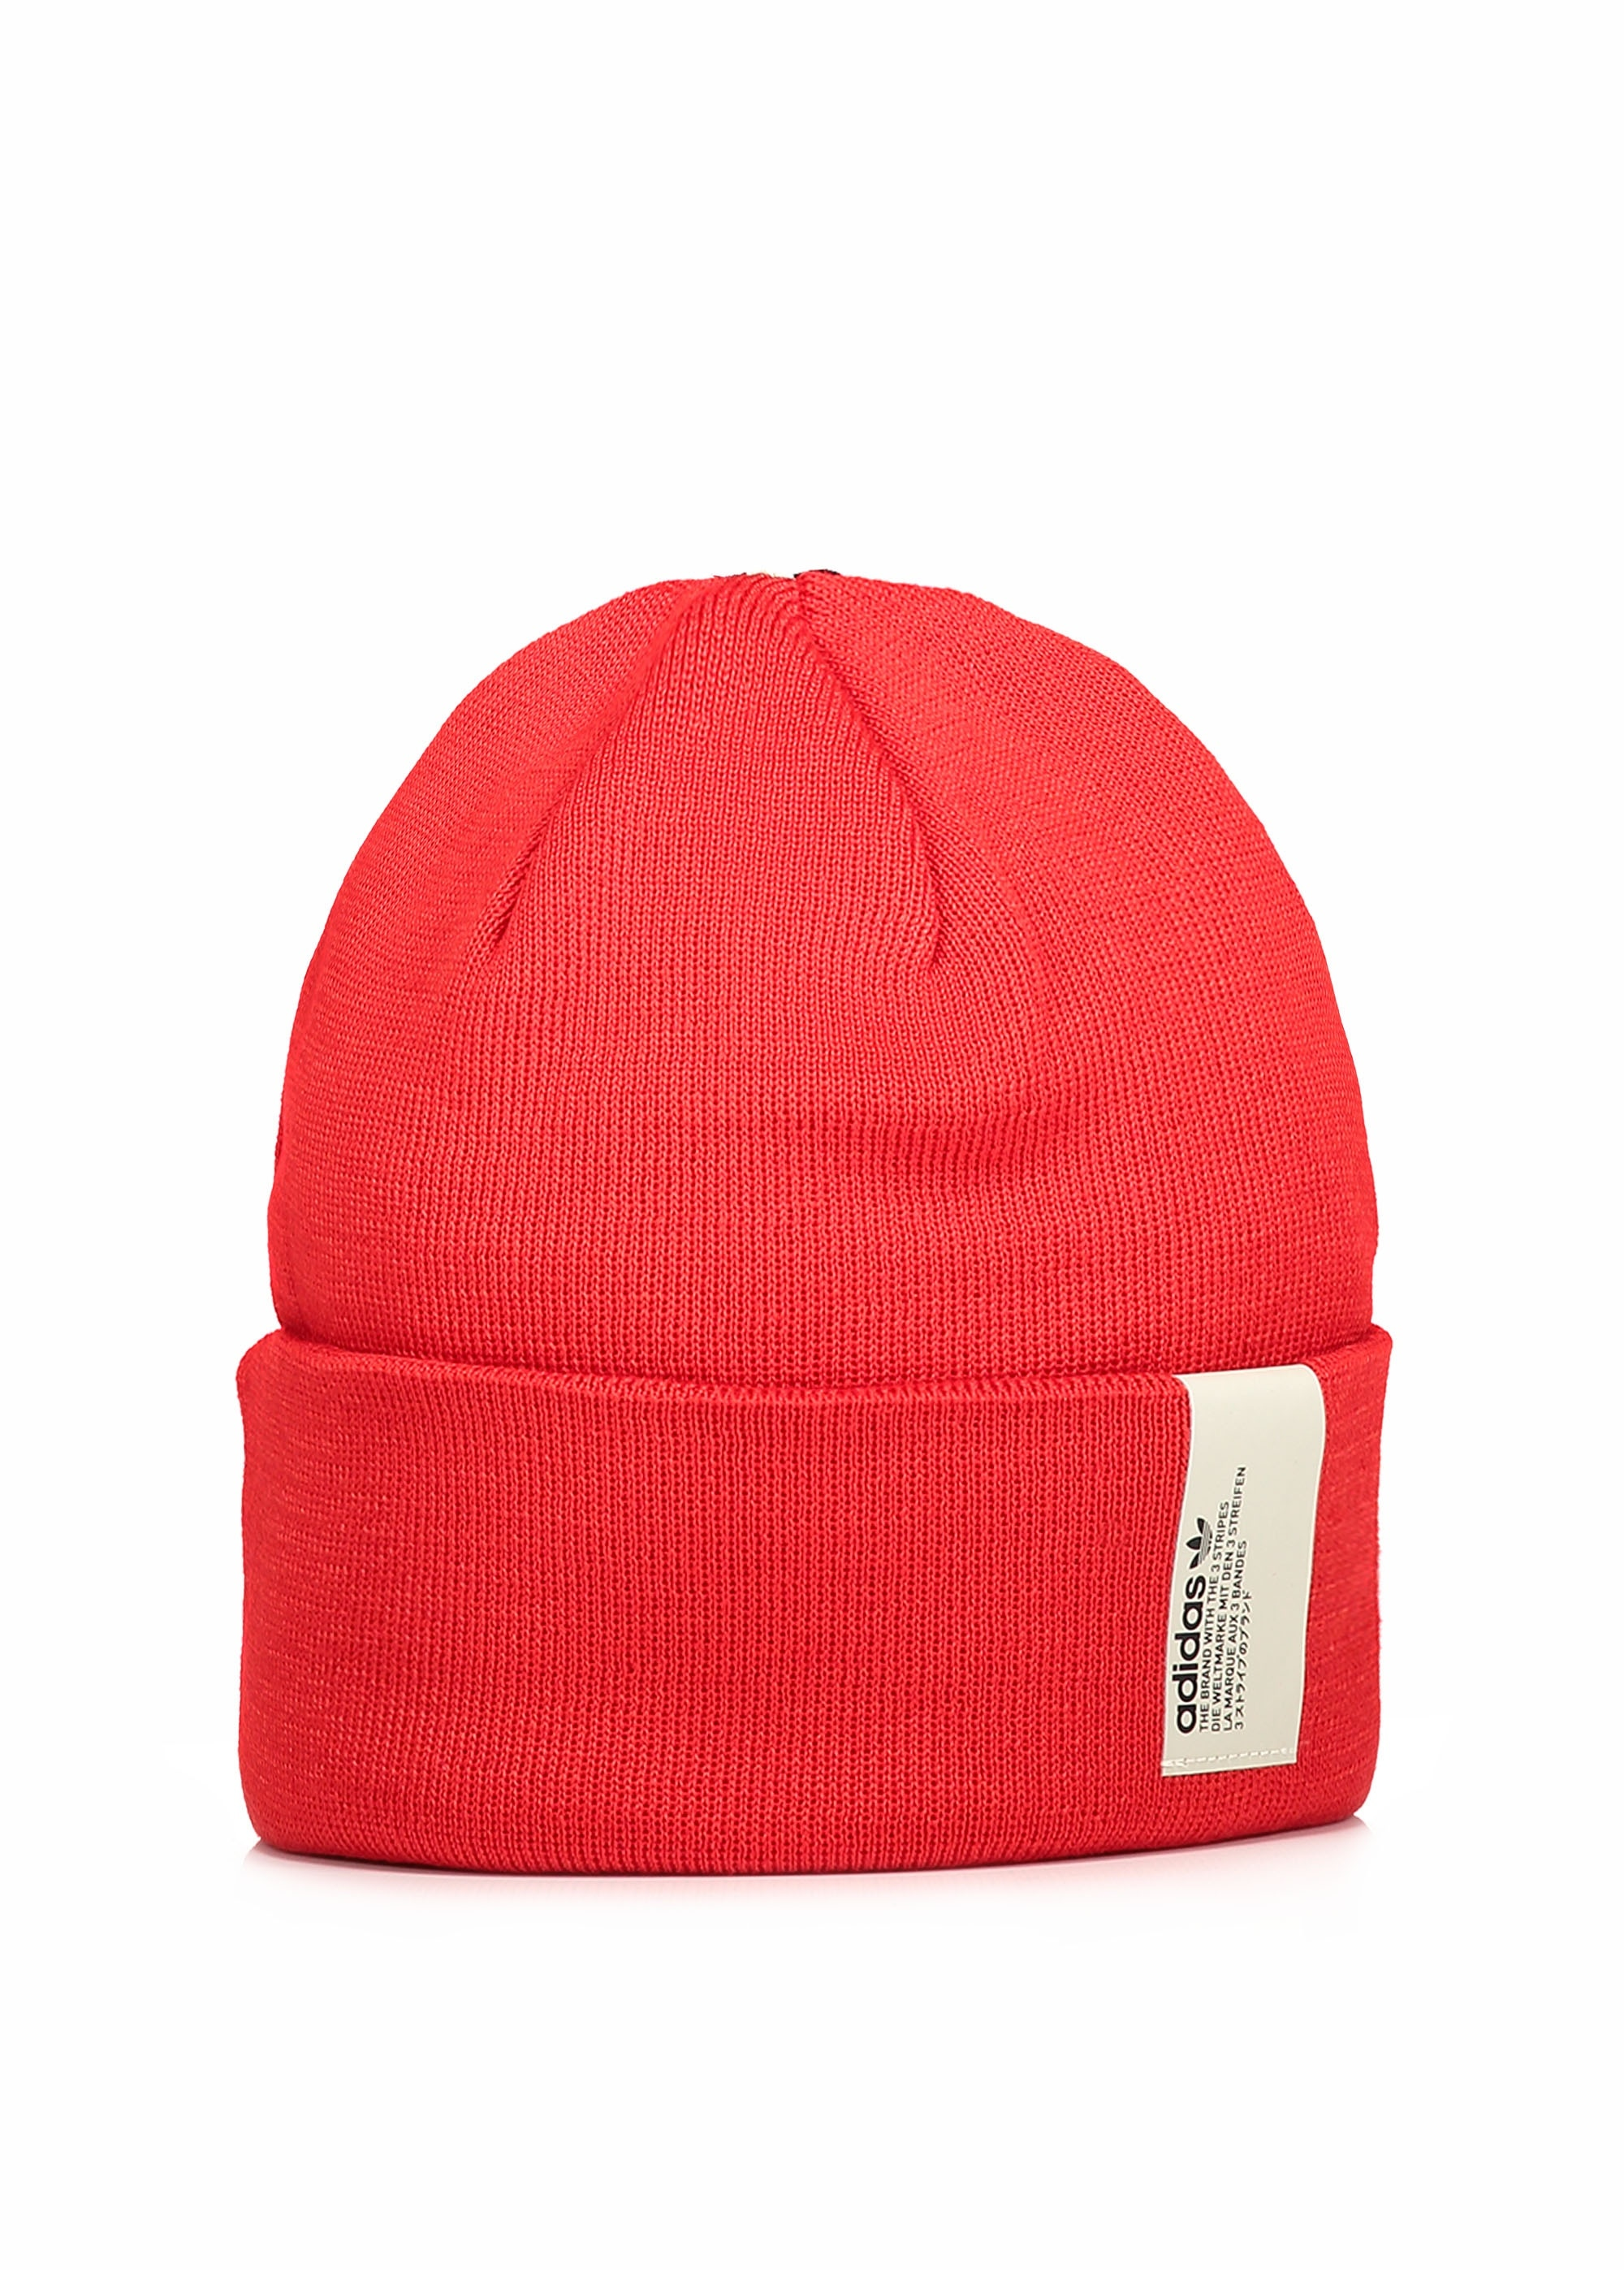 ADIDAS ORIGINALS Nmd Beanie Red